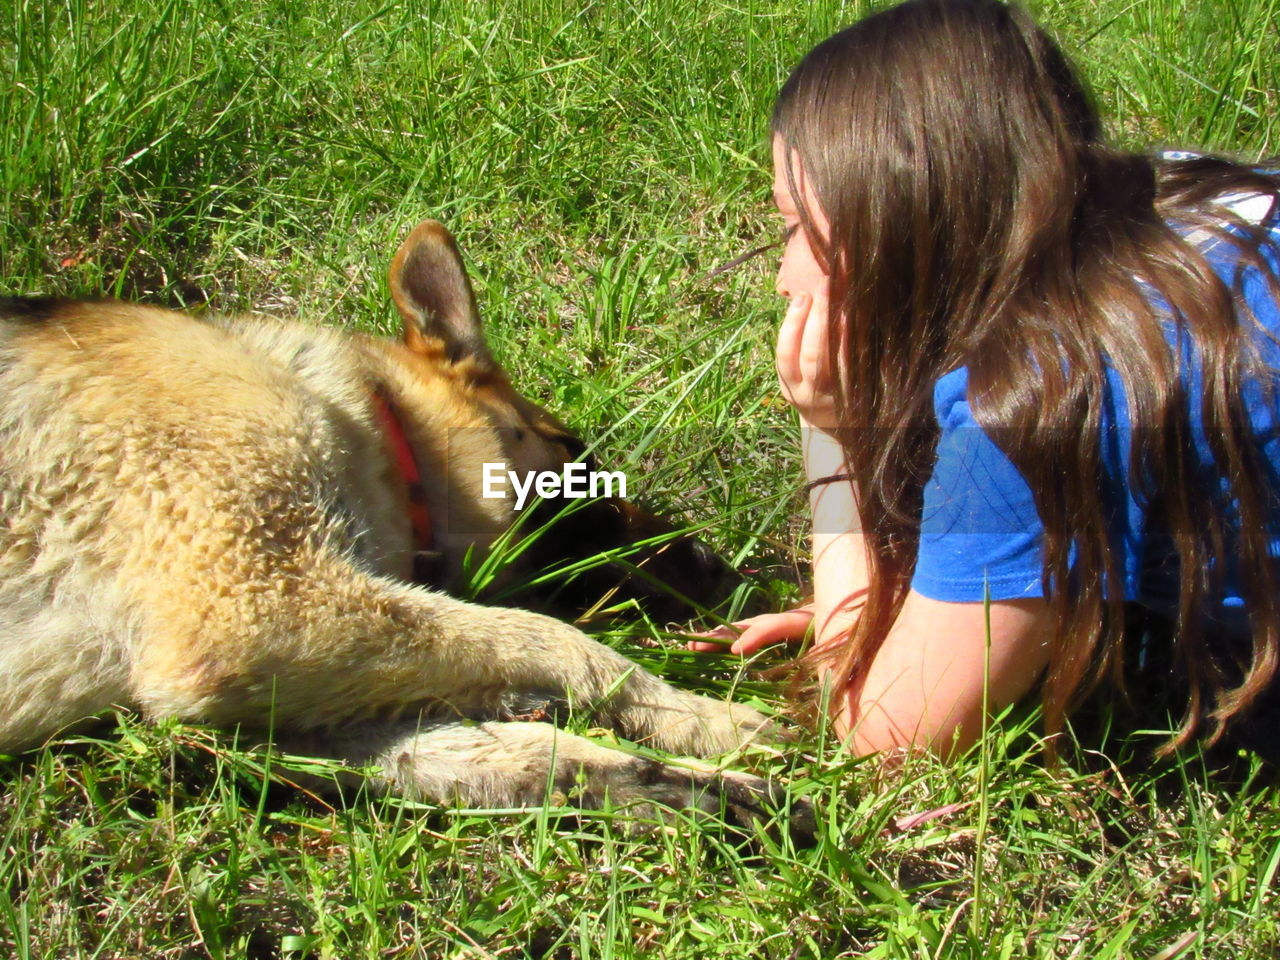 Girl looking at dog while lying on grass